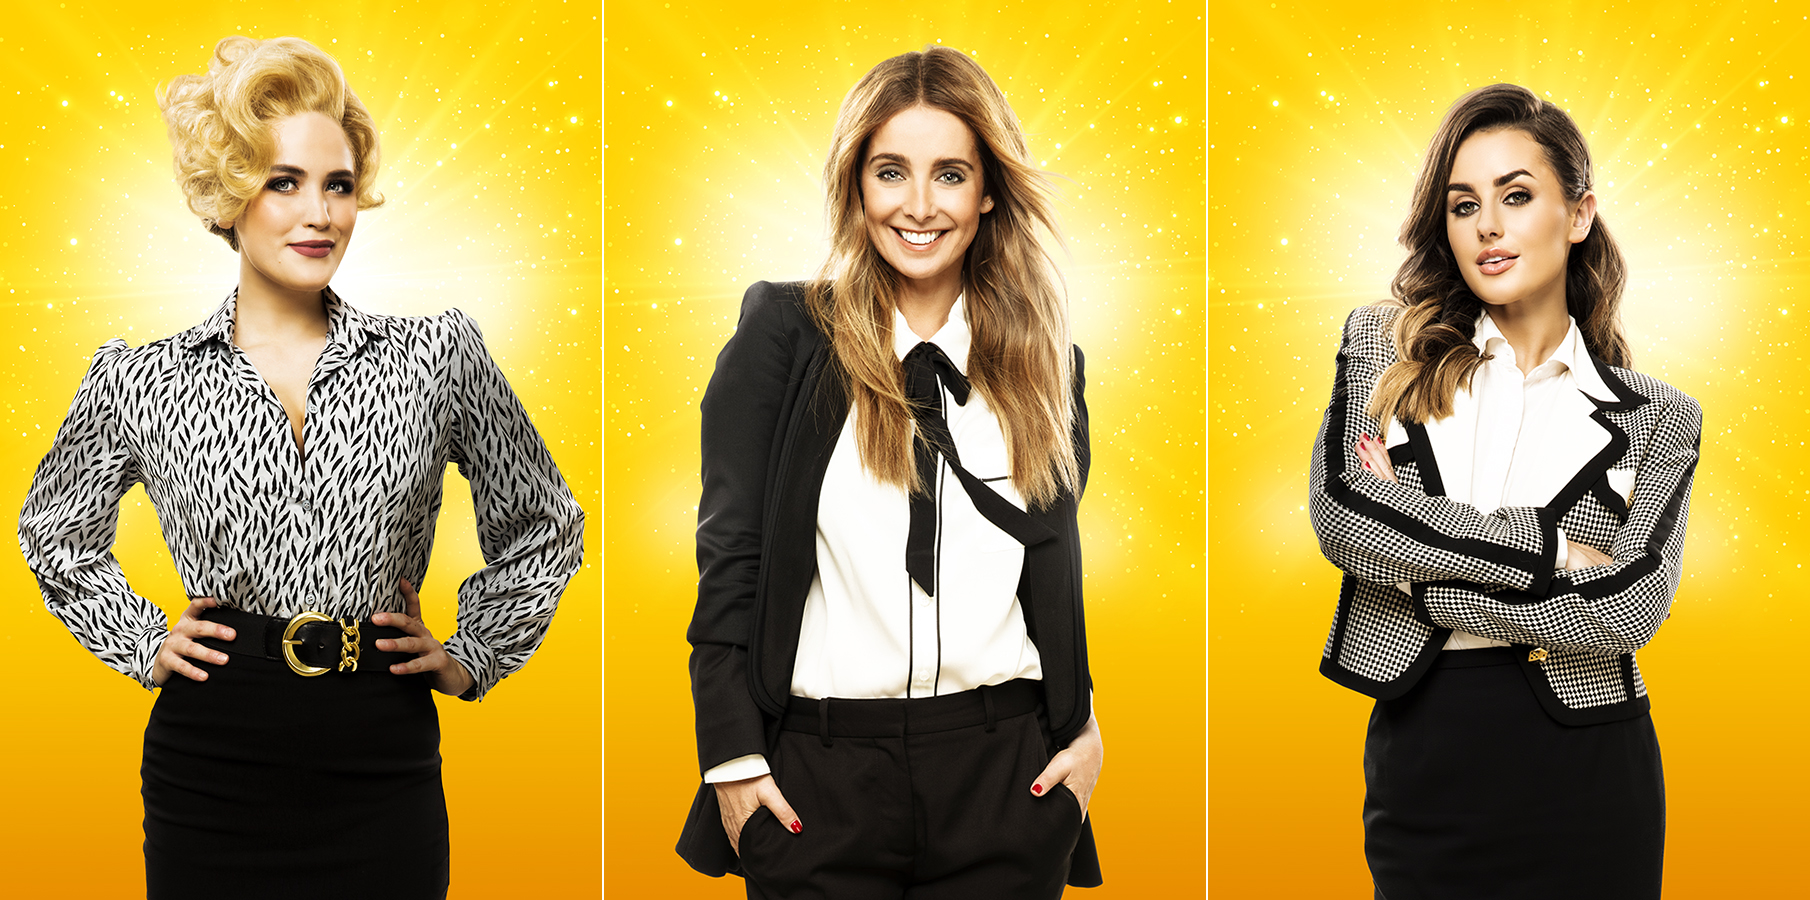 Natalie McQueen, Louise Redknapp and Amber Davies - 9 To 5 The